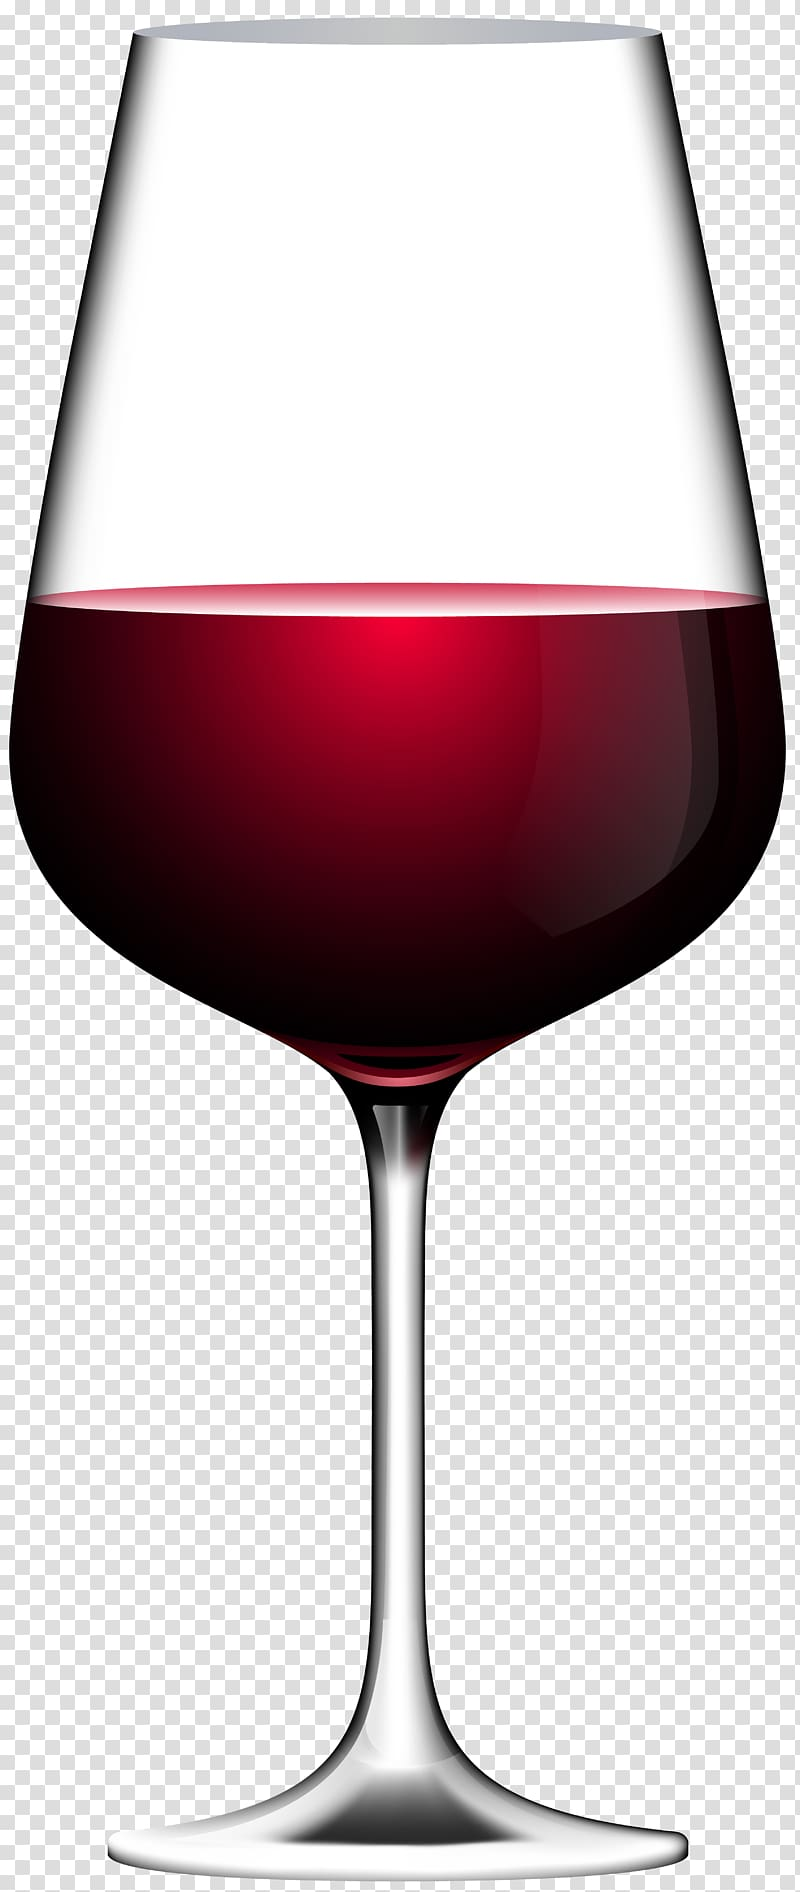 Wine glass illustration, Red Wine Champagne Wine glass , Red Wine.